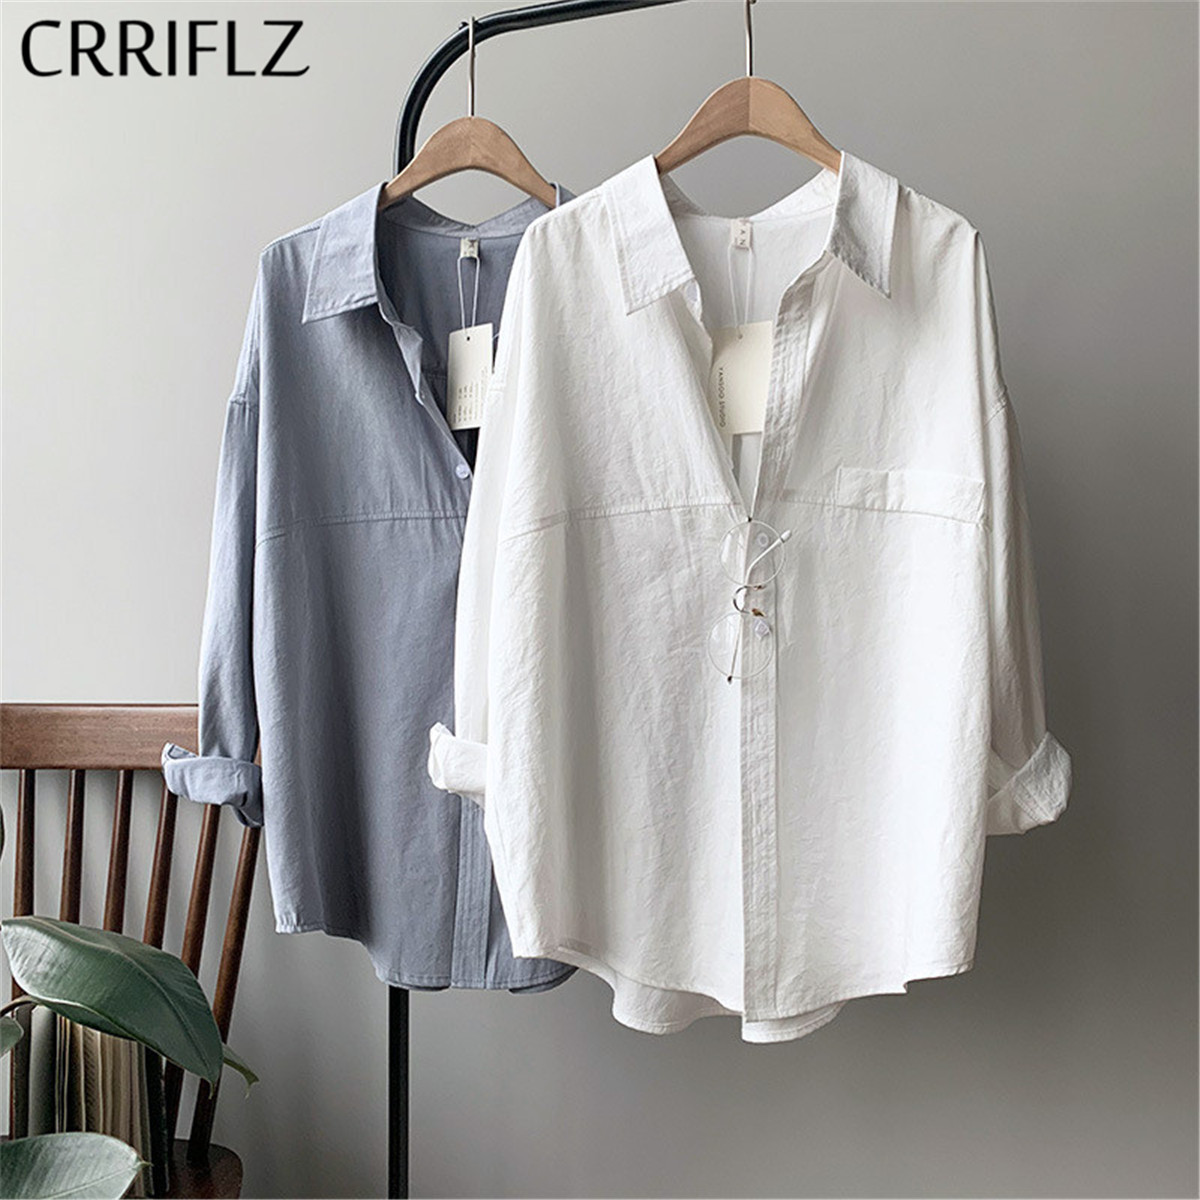 Crriflz Women's Cotton Feel Shirt Imitation Suede 2020 Spring New Long Sleeve Retro Blouses Shirts Turn-down Solid Oversize Tops